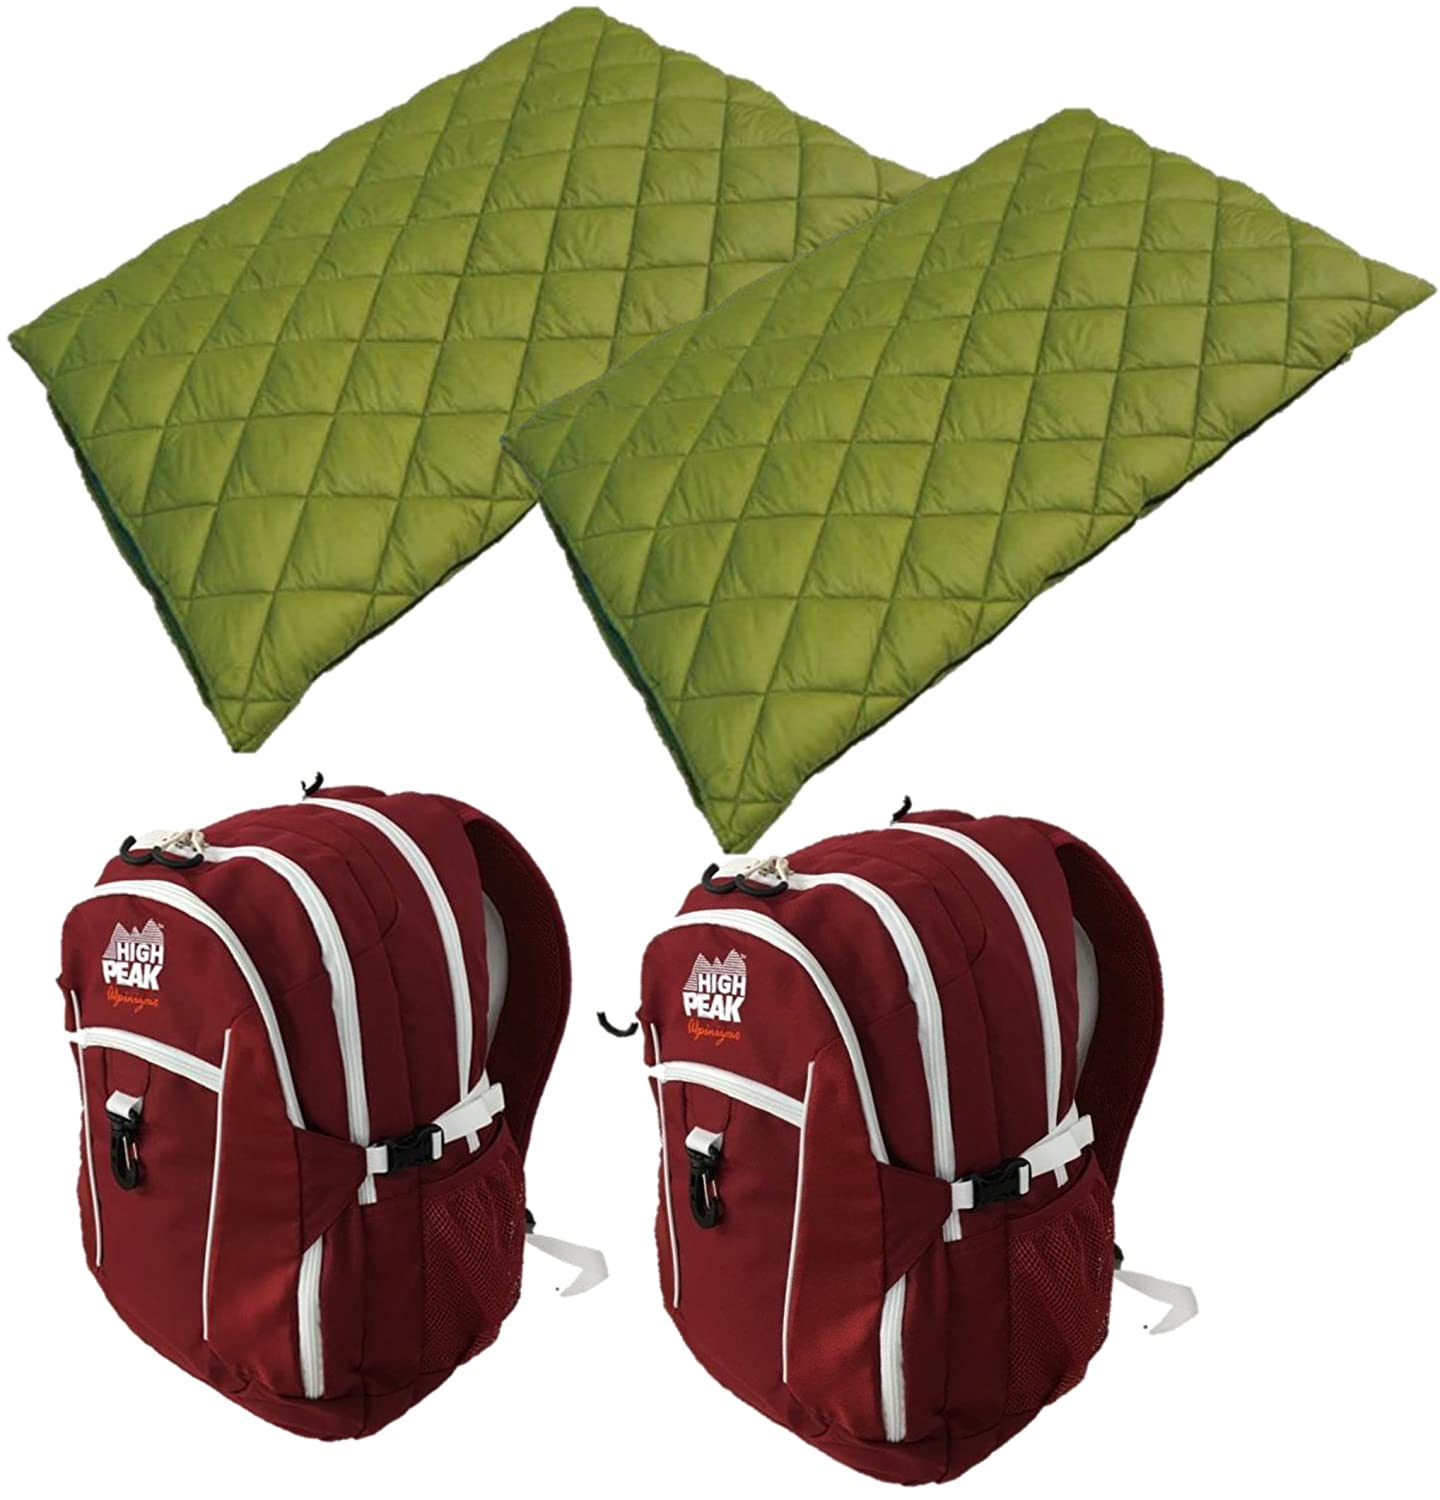 Alpinizmo High Peak USA 2 Vector 38 Backpacks Red 2 Florida 20 Sleeping Bags Combo, Red Green, One Size